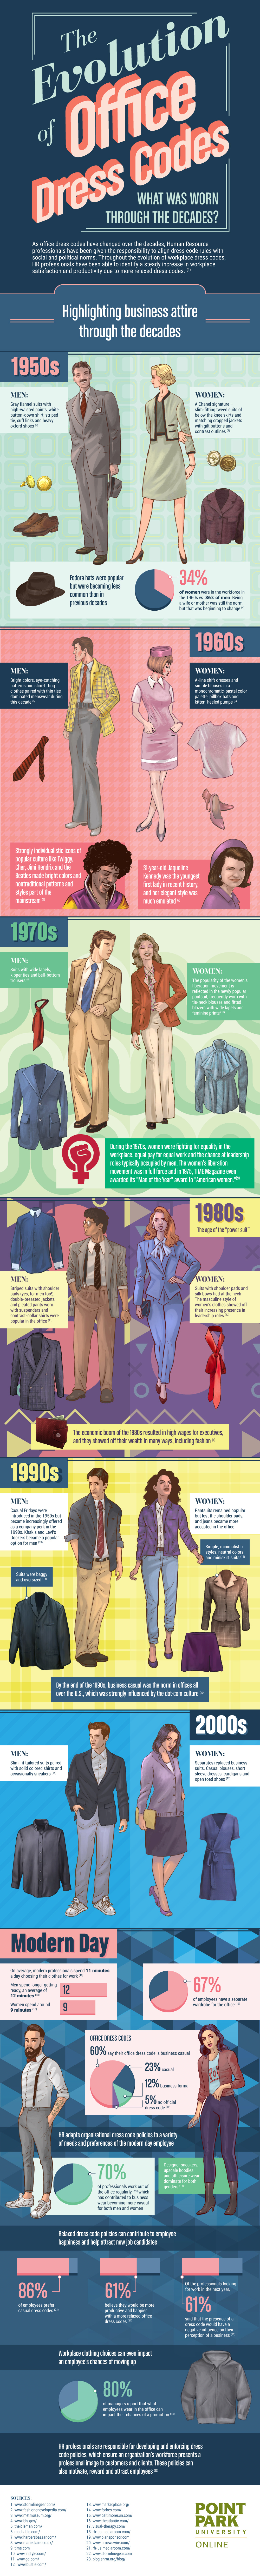 The Evolution of Office Dress Codes